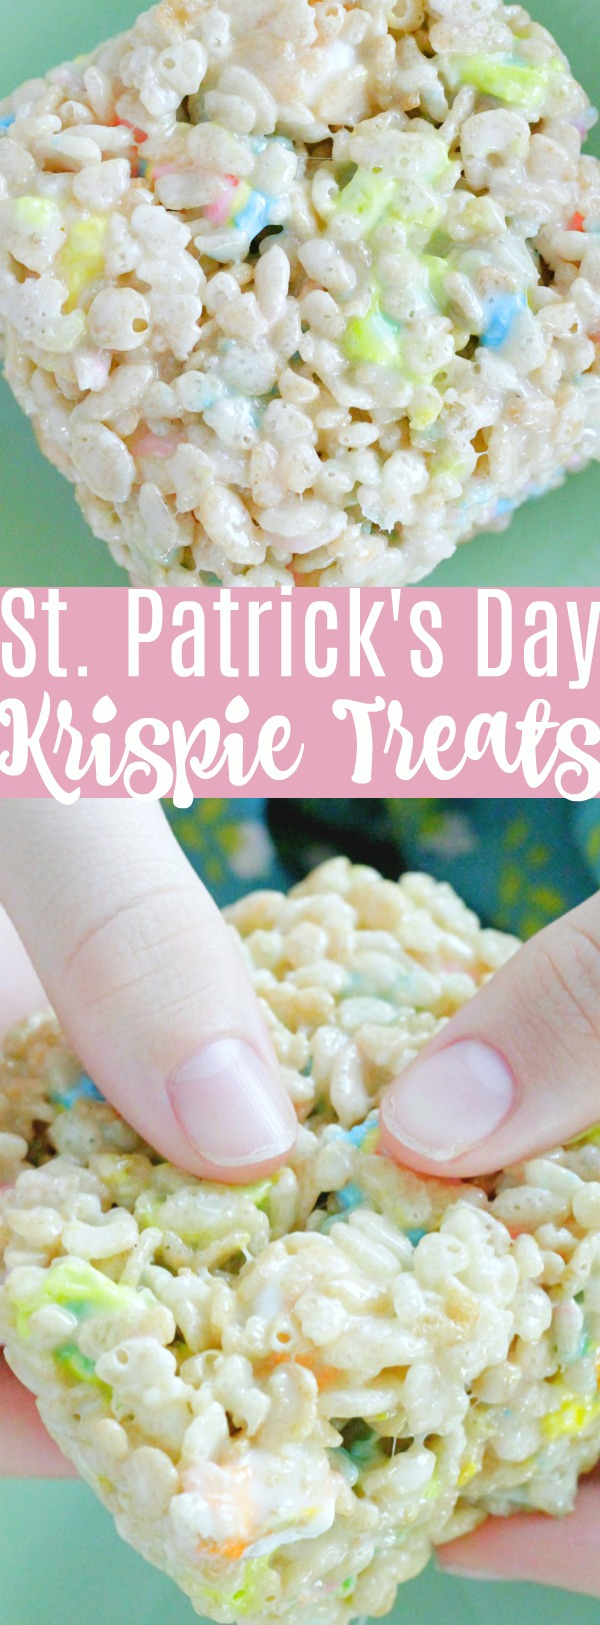 St. Patrick's Day Krispie Treats | Foodtastic Mom